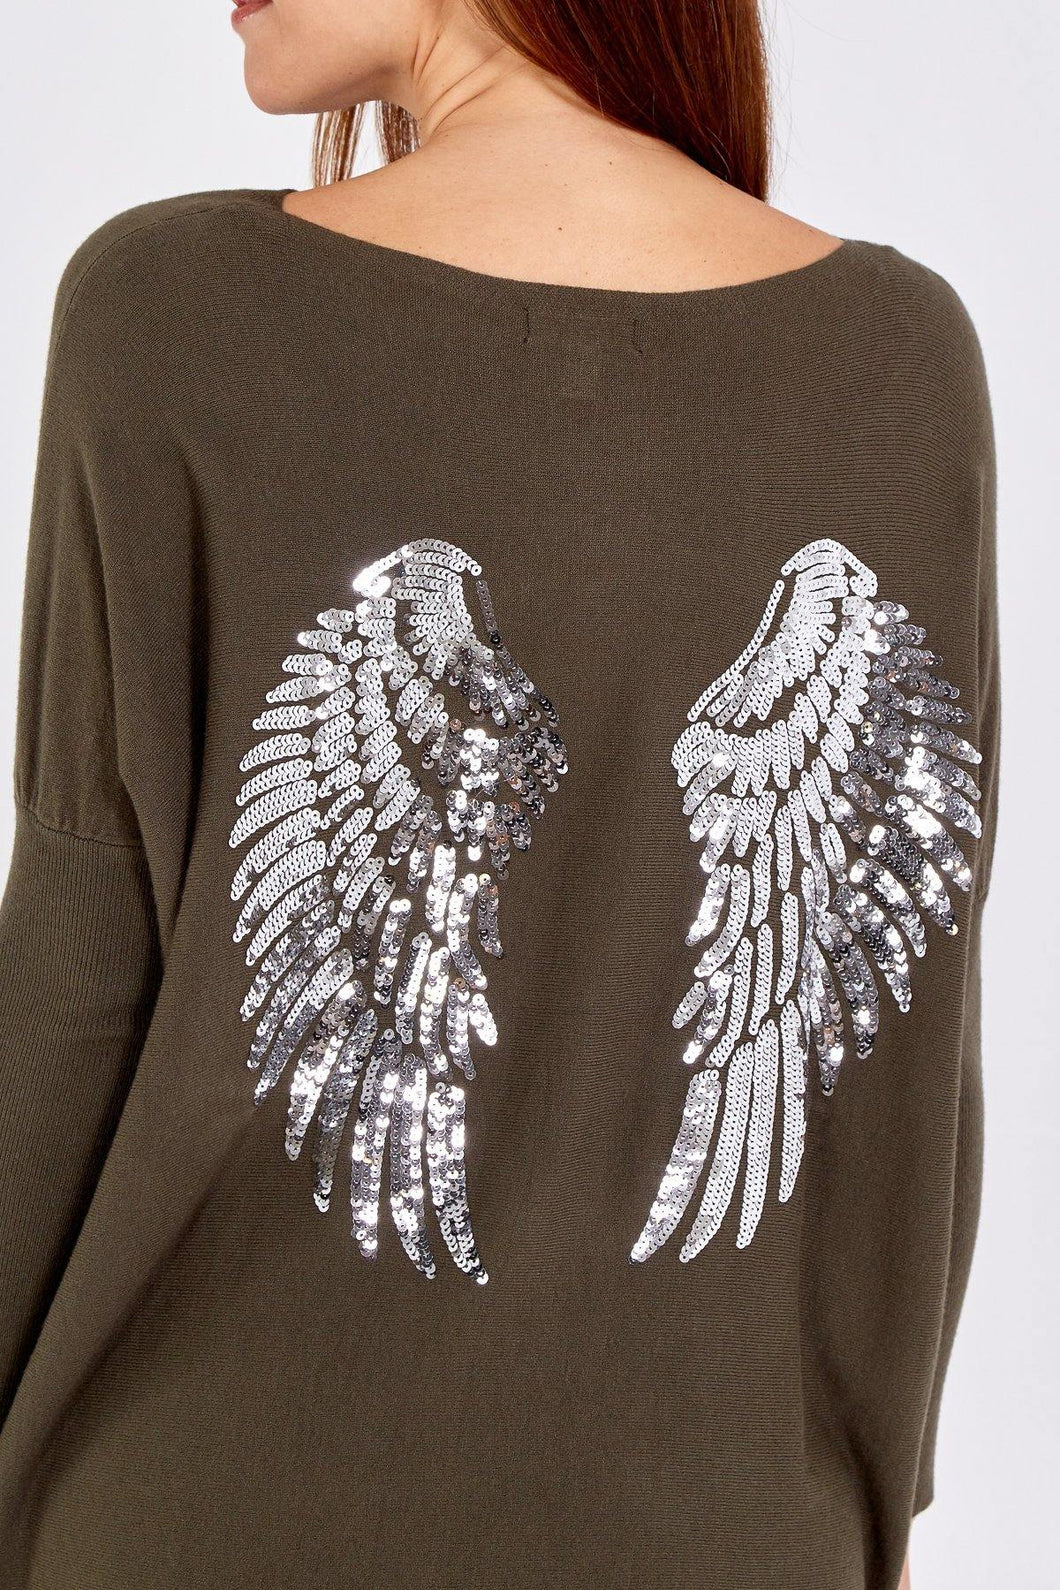 Silver Sequin Wing Oversized Jumper & Legging Set freeshipping - herfreespirit